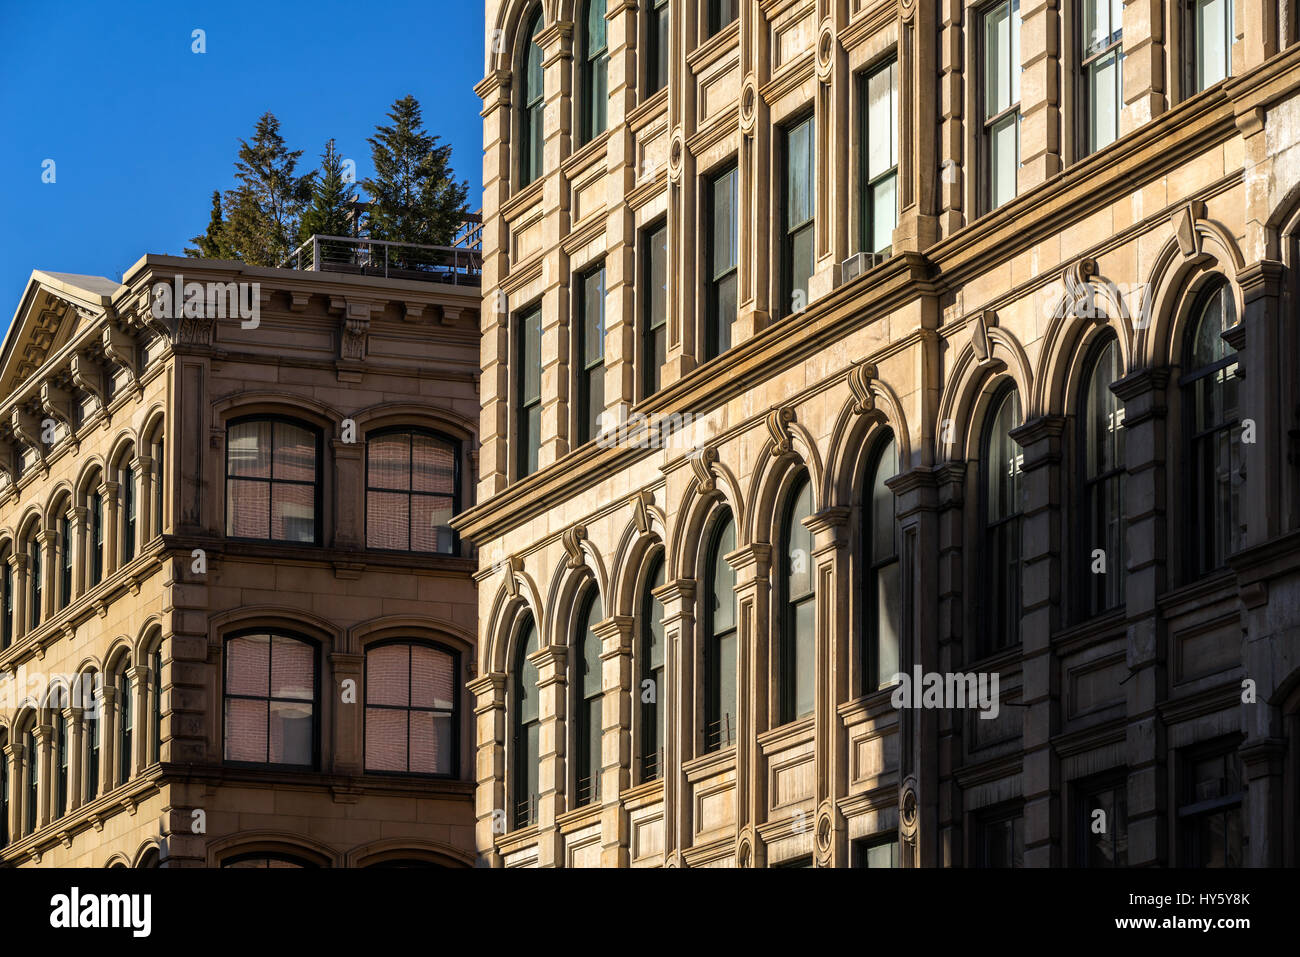 Typical Soho building facades with ornamentation and terraces, Manhattan, New York City Stock Photo